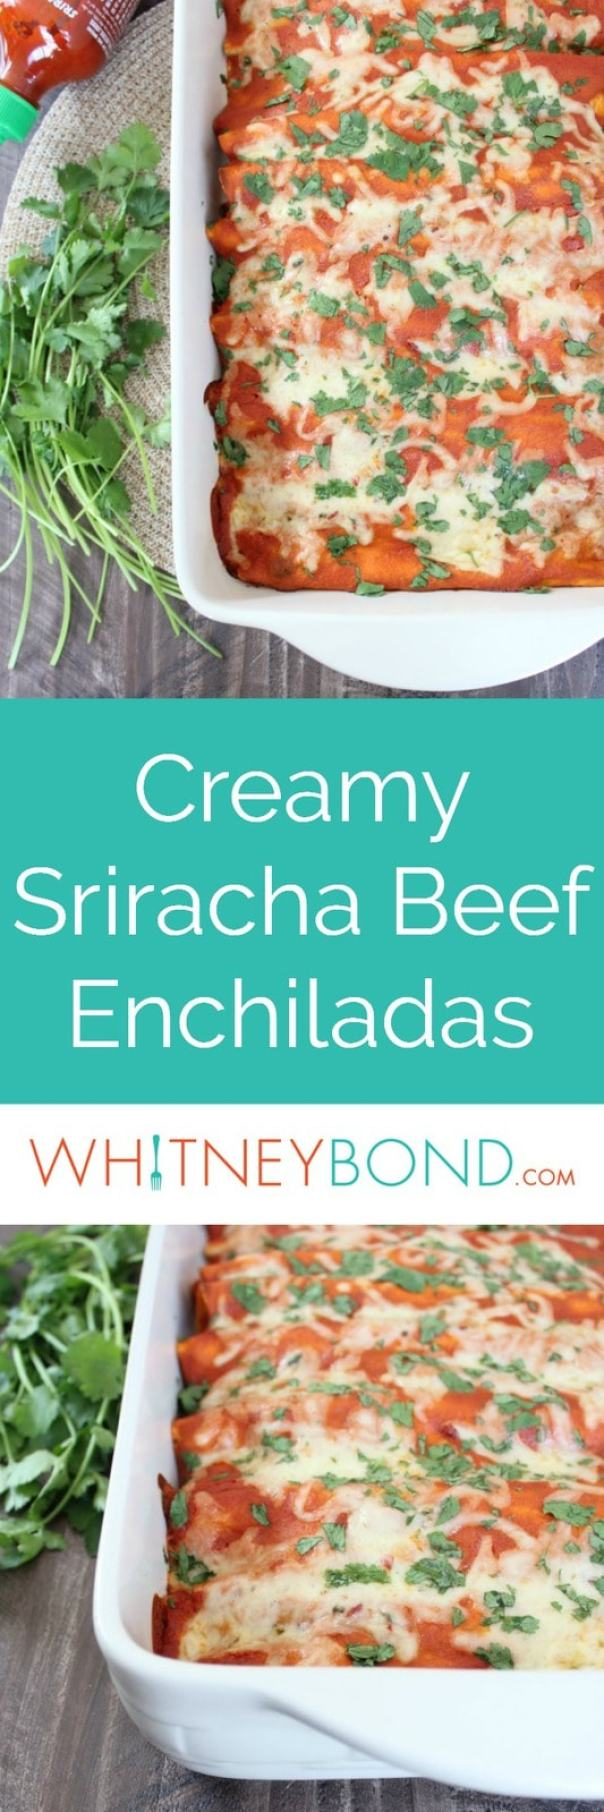 This enchilada recipe combines spicy ground beef with creamy sriracha sauce & lots of cheese for a delicious recipe that's quick and easy to make!